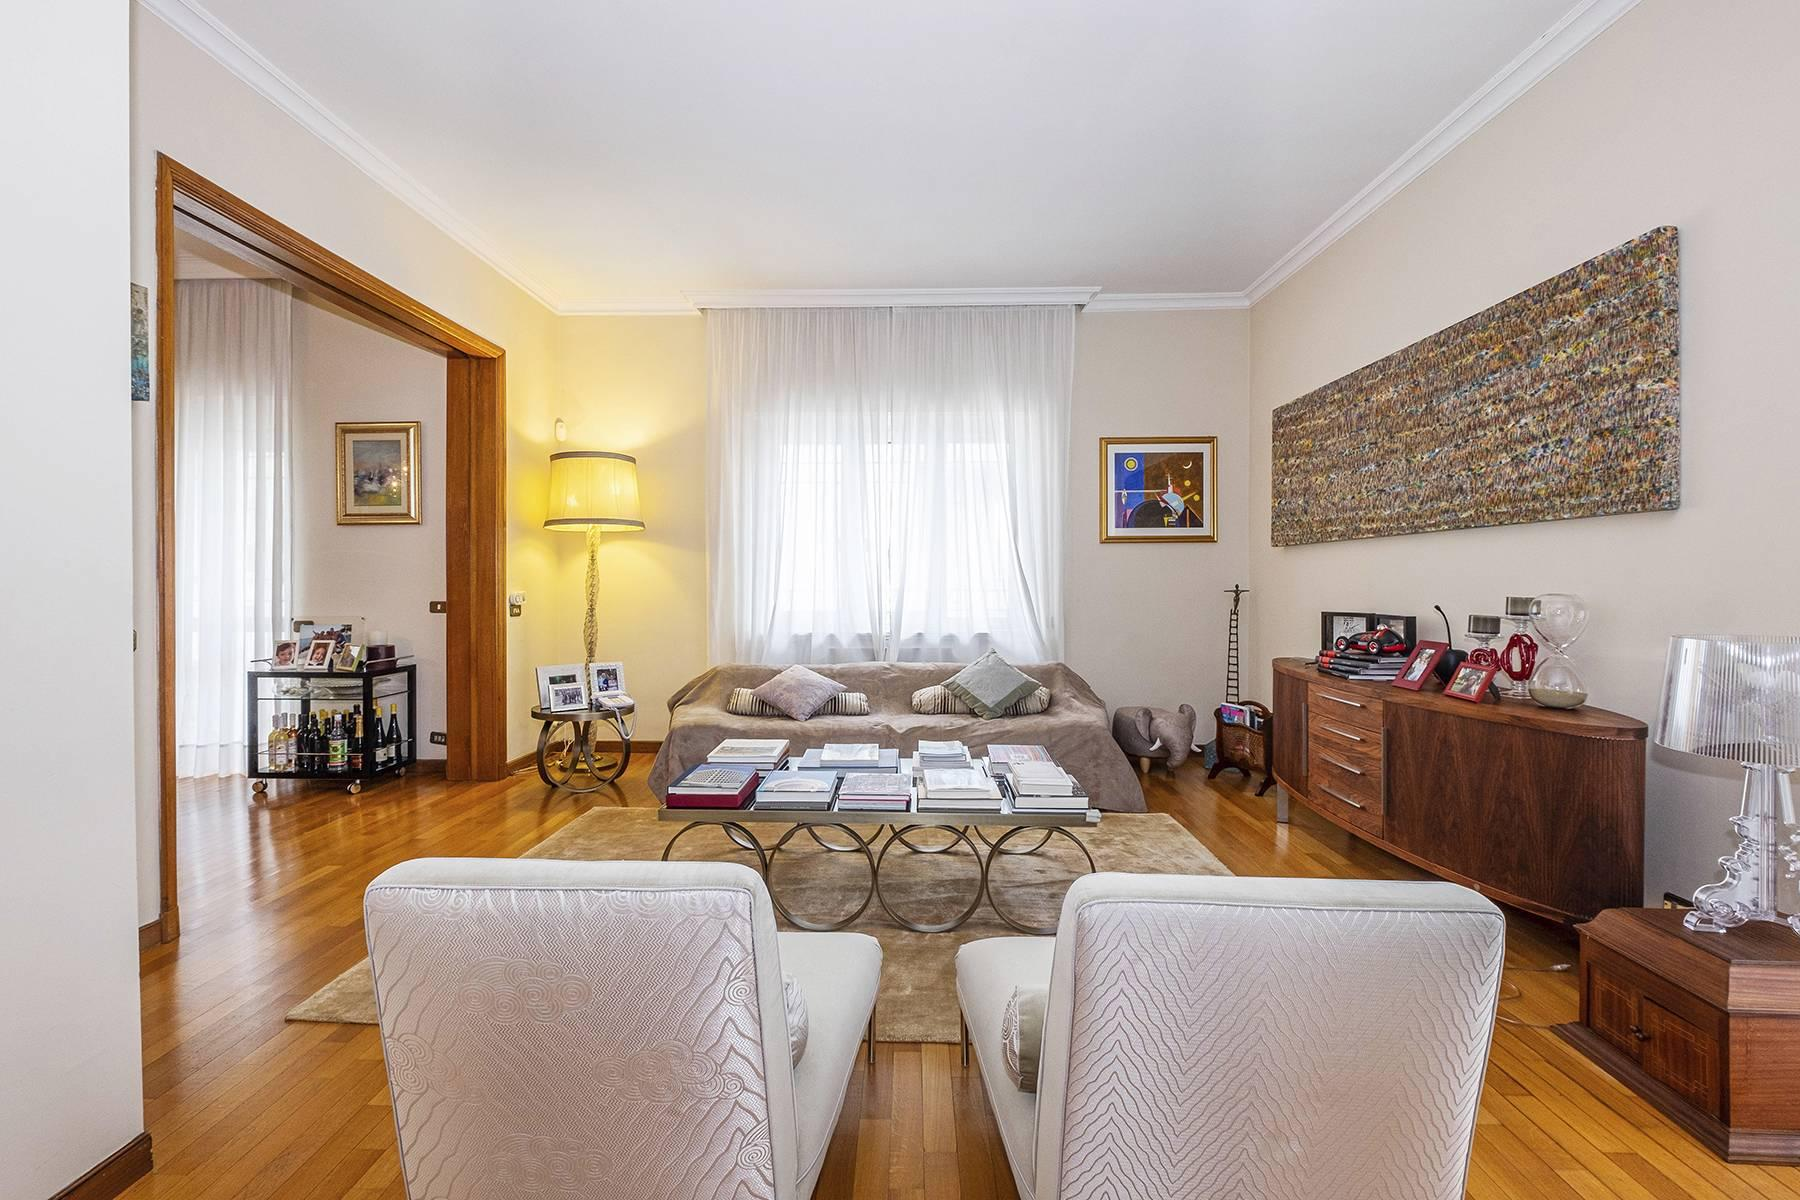 Modern penthouse with stunning 70 sqm terrace a stone's throw from Villa Borghese - 1